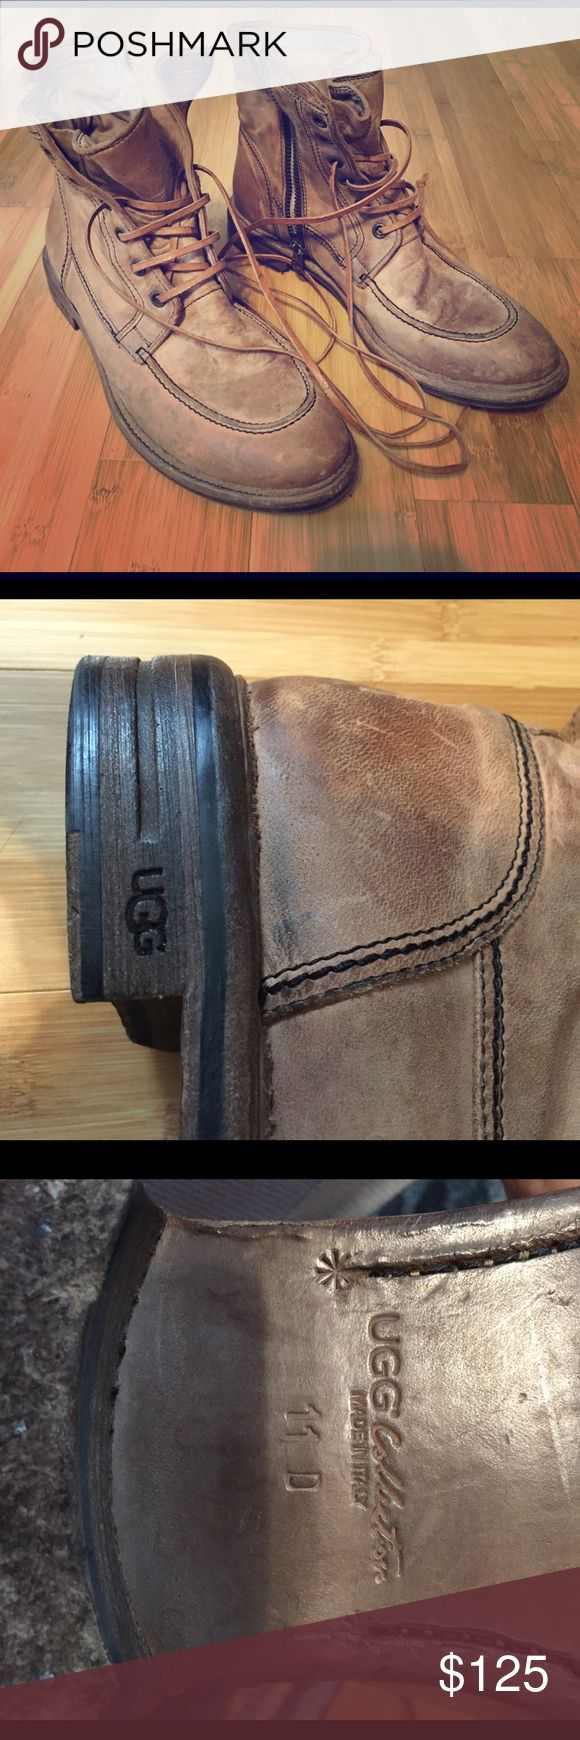 🙌🏼RARE🙌🏼 Men's UGG prototype - Italian Leather 🙌🏼RARE🙌🏼 Men's UGG Prototype Italian Leather sand color military style boots. These boots are seriously one of a kind! Side zipper and front tie access. Nice long leather shoe strings. Worn a couple times as you can see some scuffing on the wooden part of the sole but the rubber is virtually untouched. UGG Shoes Boots